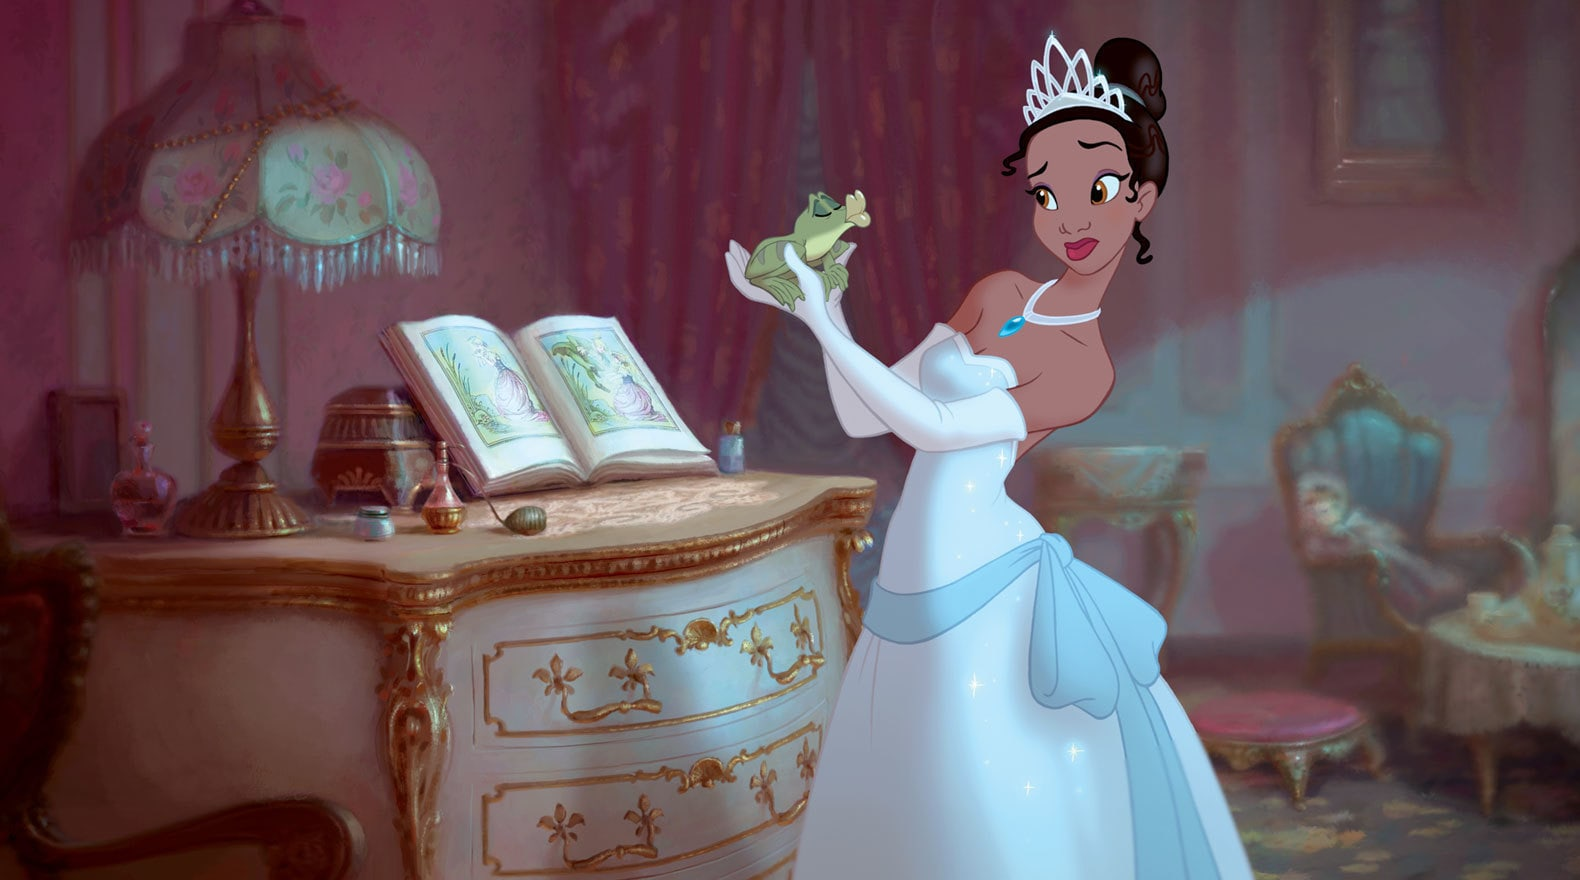 Naveen as a frog held by Tiana in The Princess and the Frog